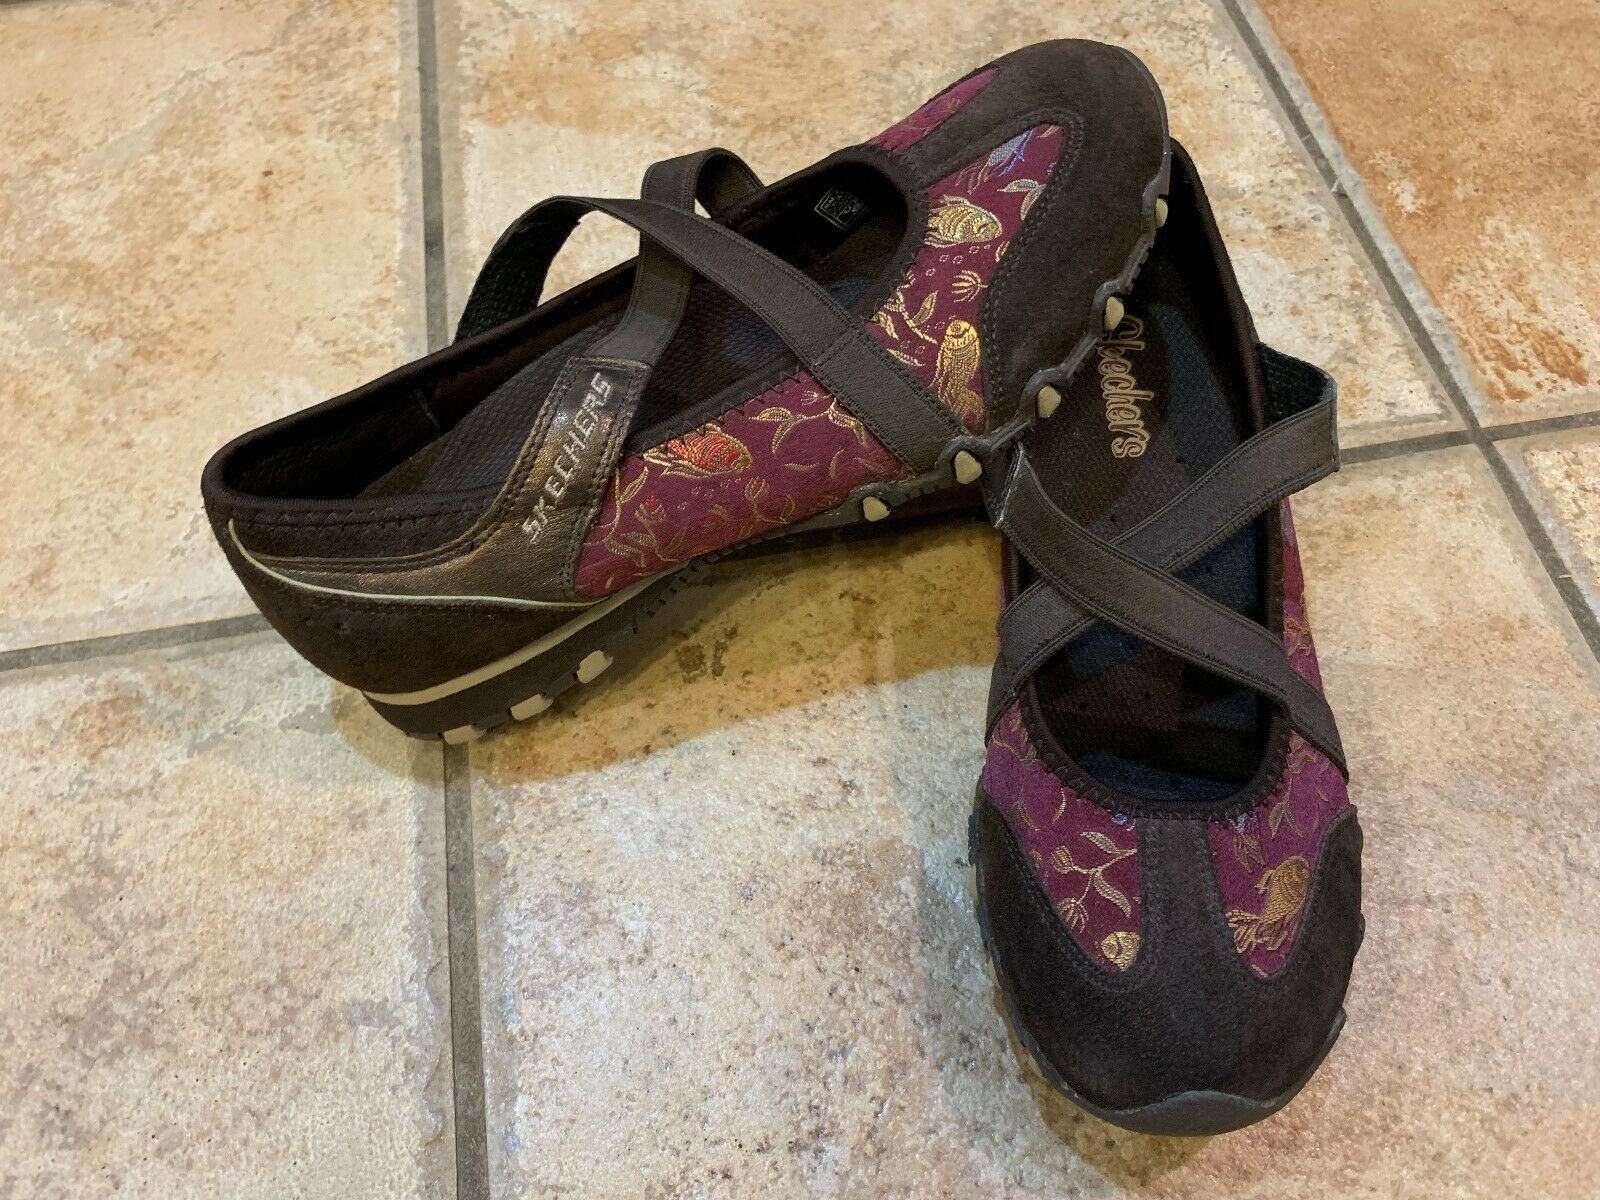 SKECHERS WATERLILY BIKERS  BROWN SUEDE BURGUNDY FLORAL SATIN 6 36 M SNEAKERS NEW